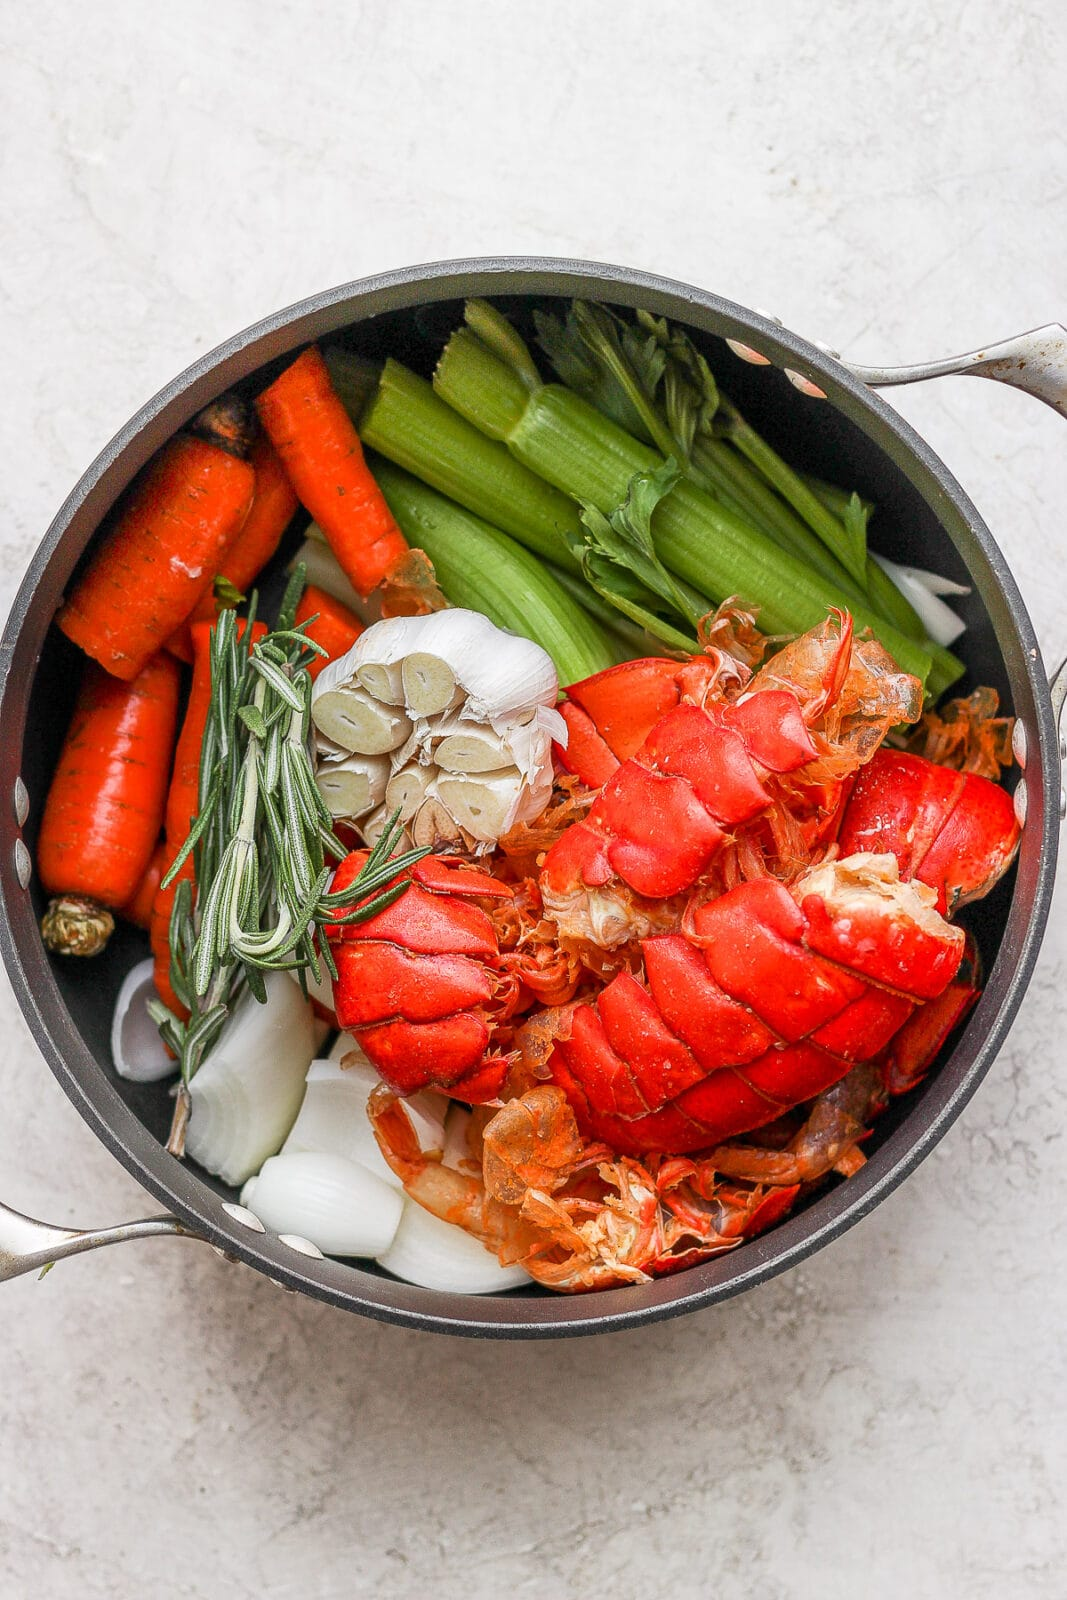 Dutch oven with seafood stock ingredients inside.